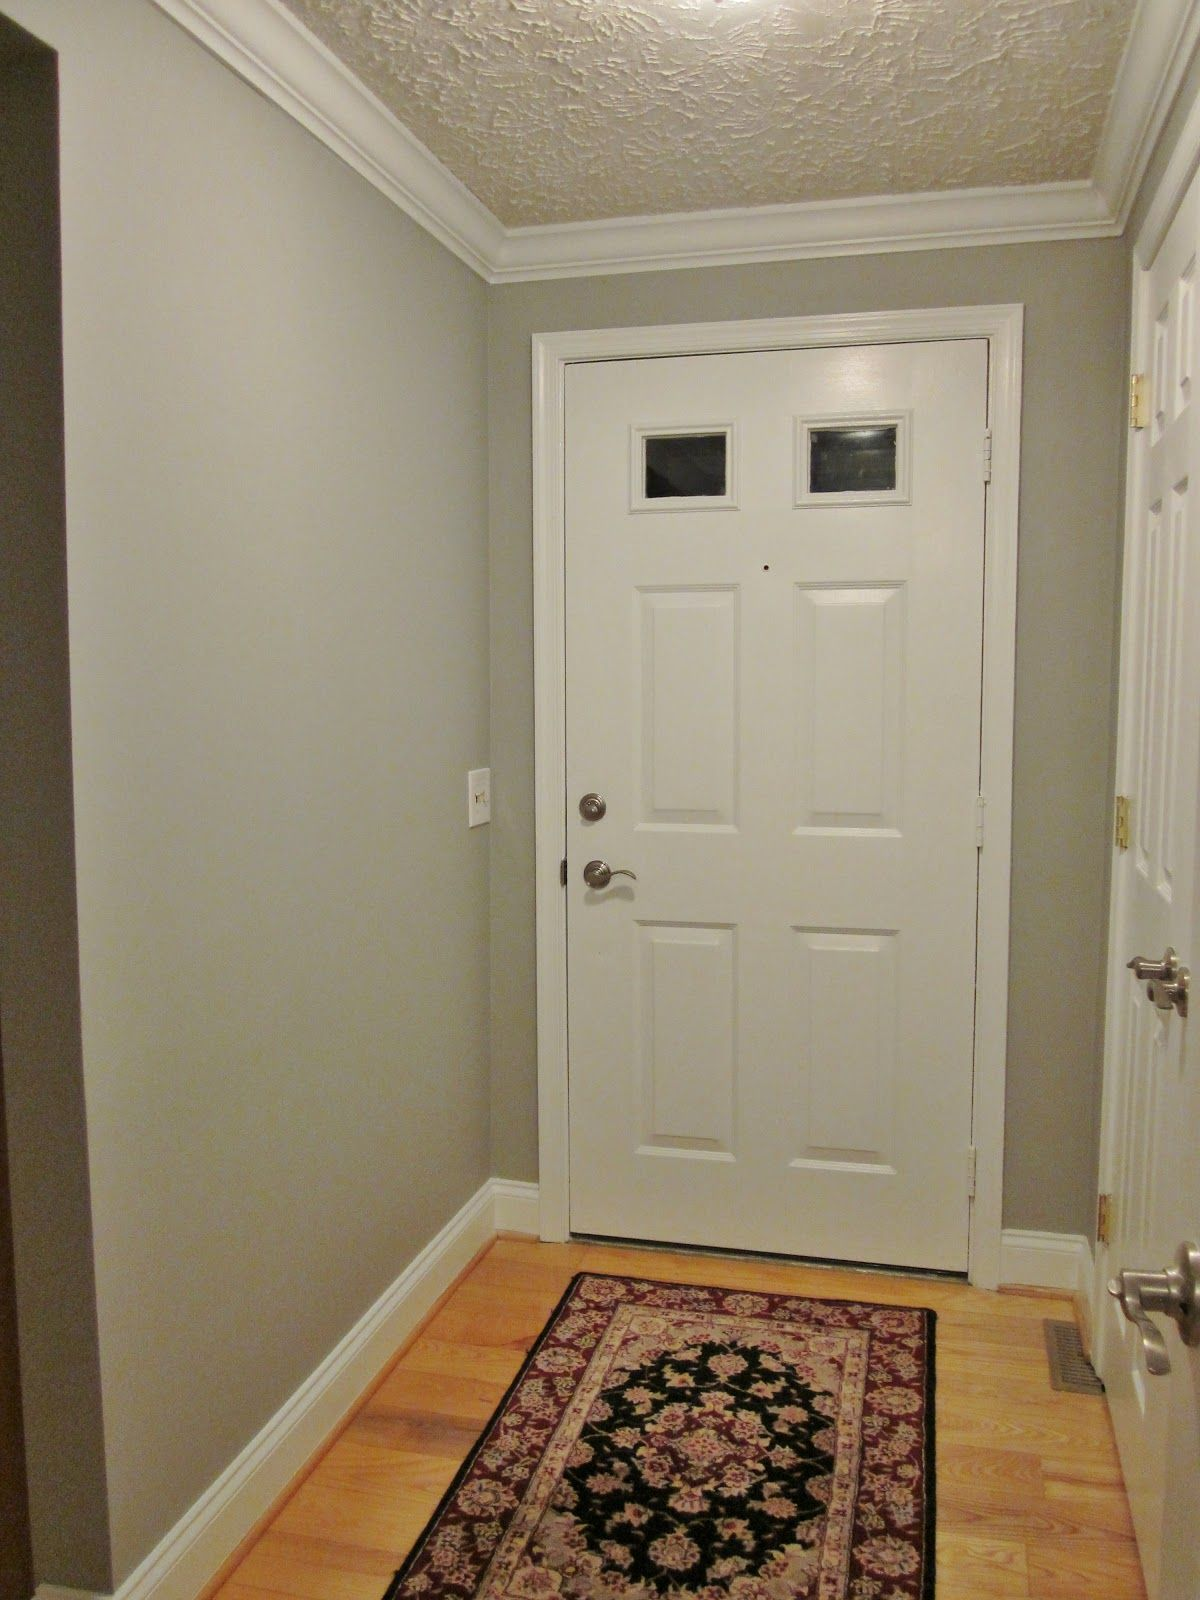 Paint Ideas For Foyer bonnieprojects: foyer update: color and light | paint ideas